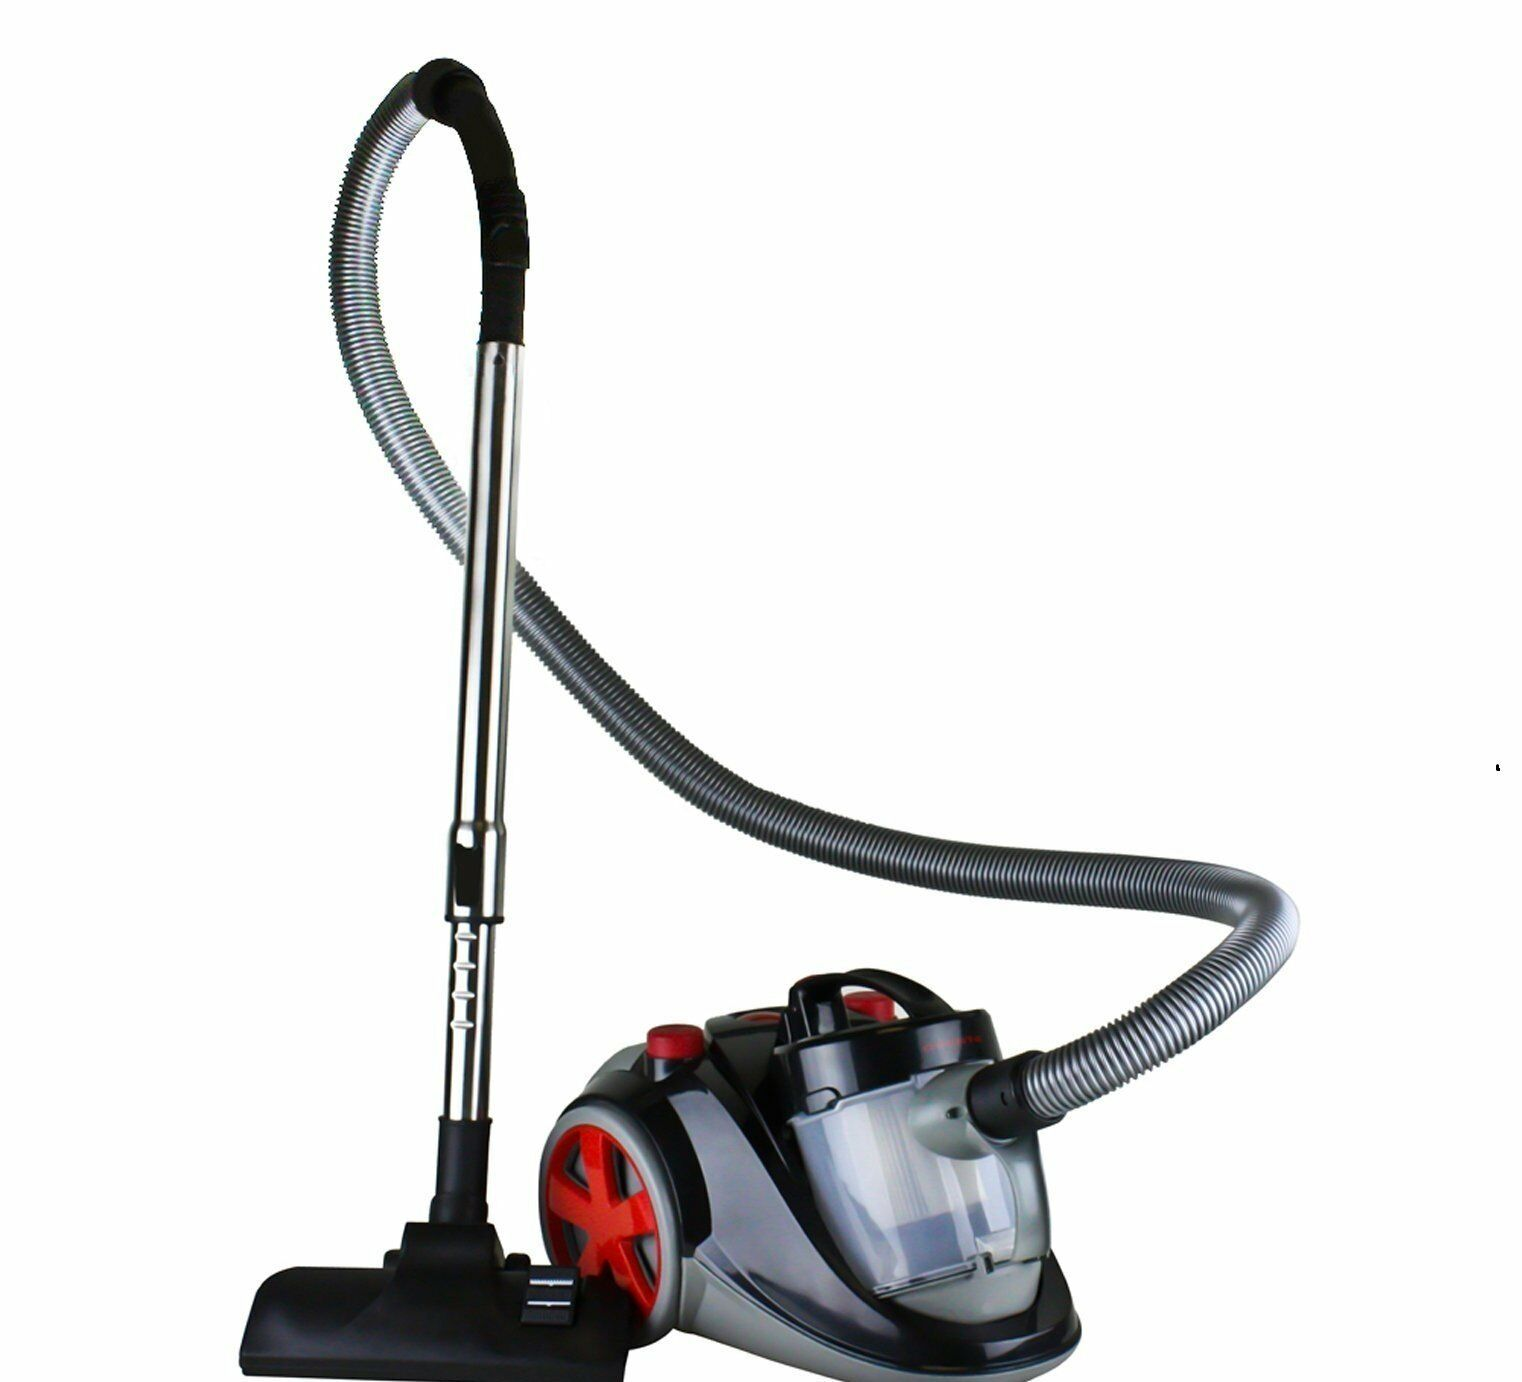 Ovente ST2000 Featherlite Cyclonic Bagless Canister Vacuum with Hepa Filter -